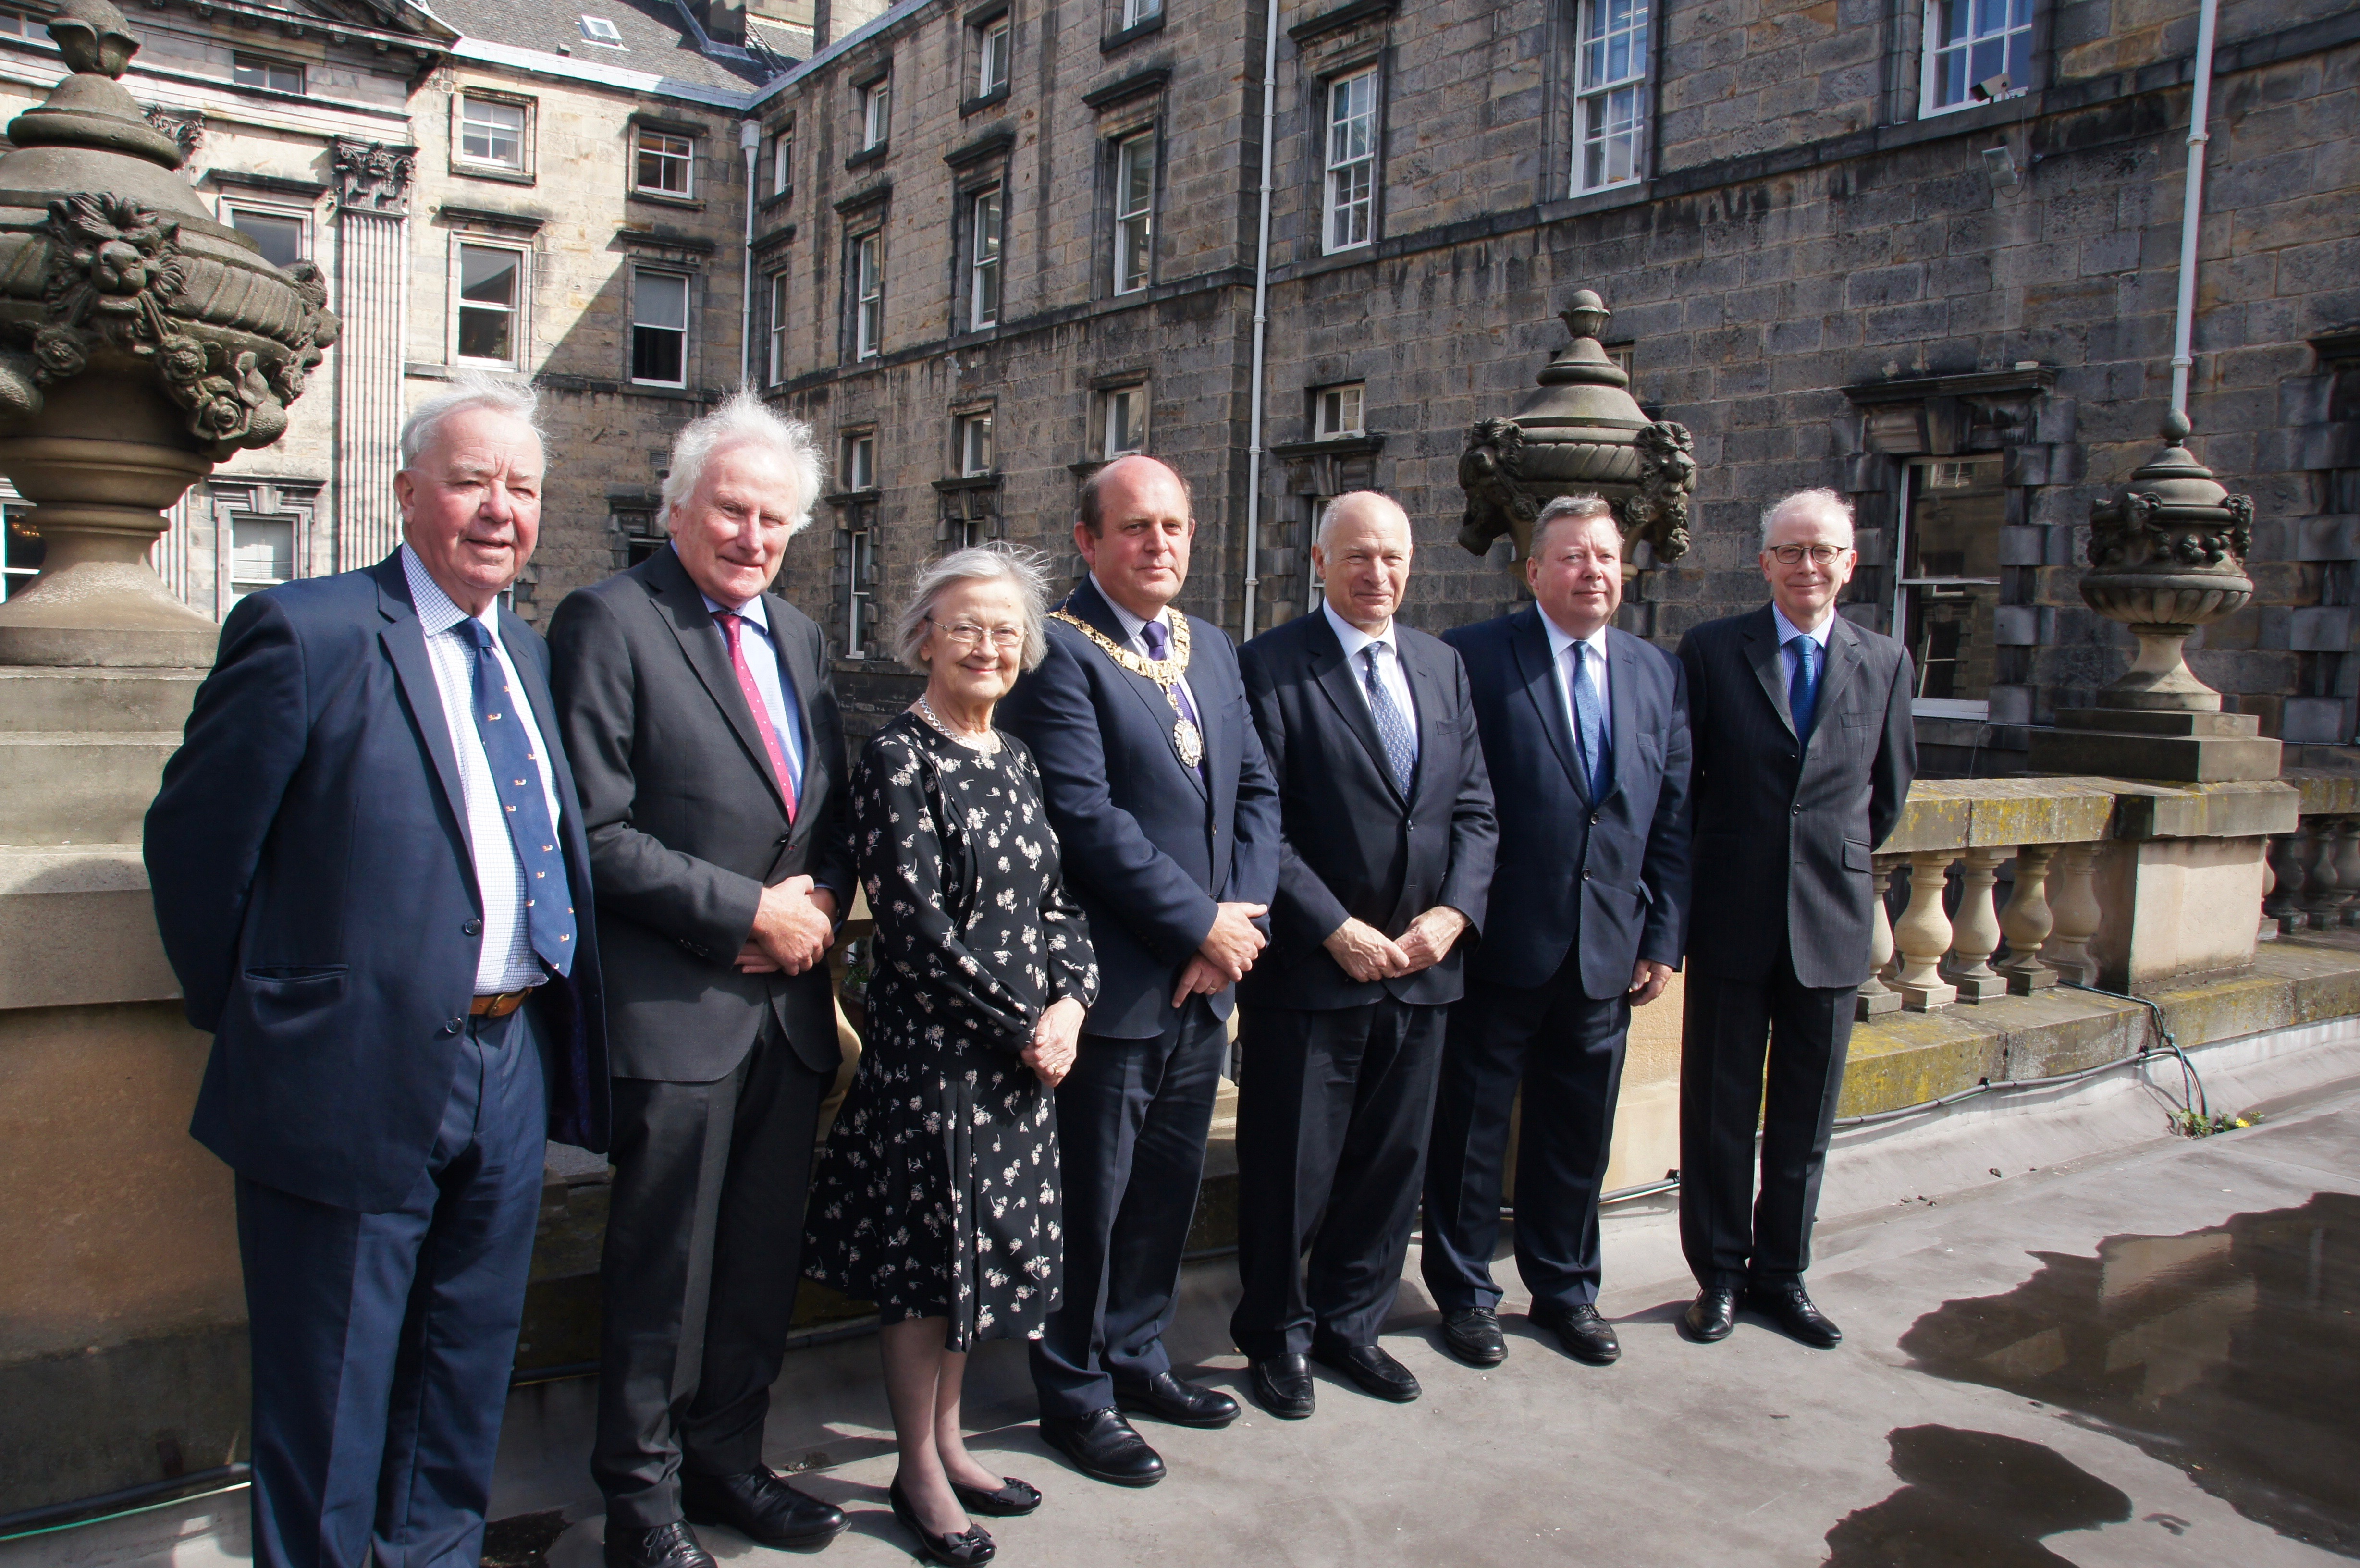 Supreme Court judges Edinburgh with the Lord Provost